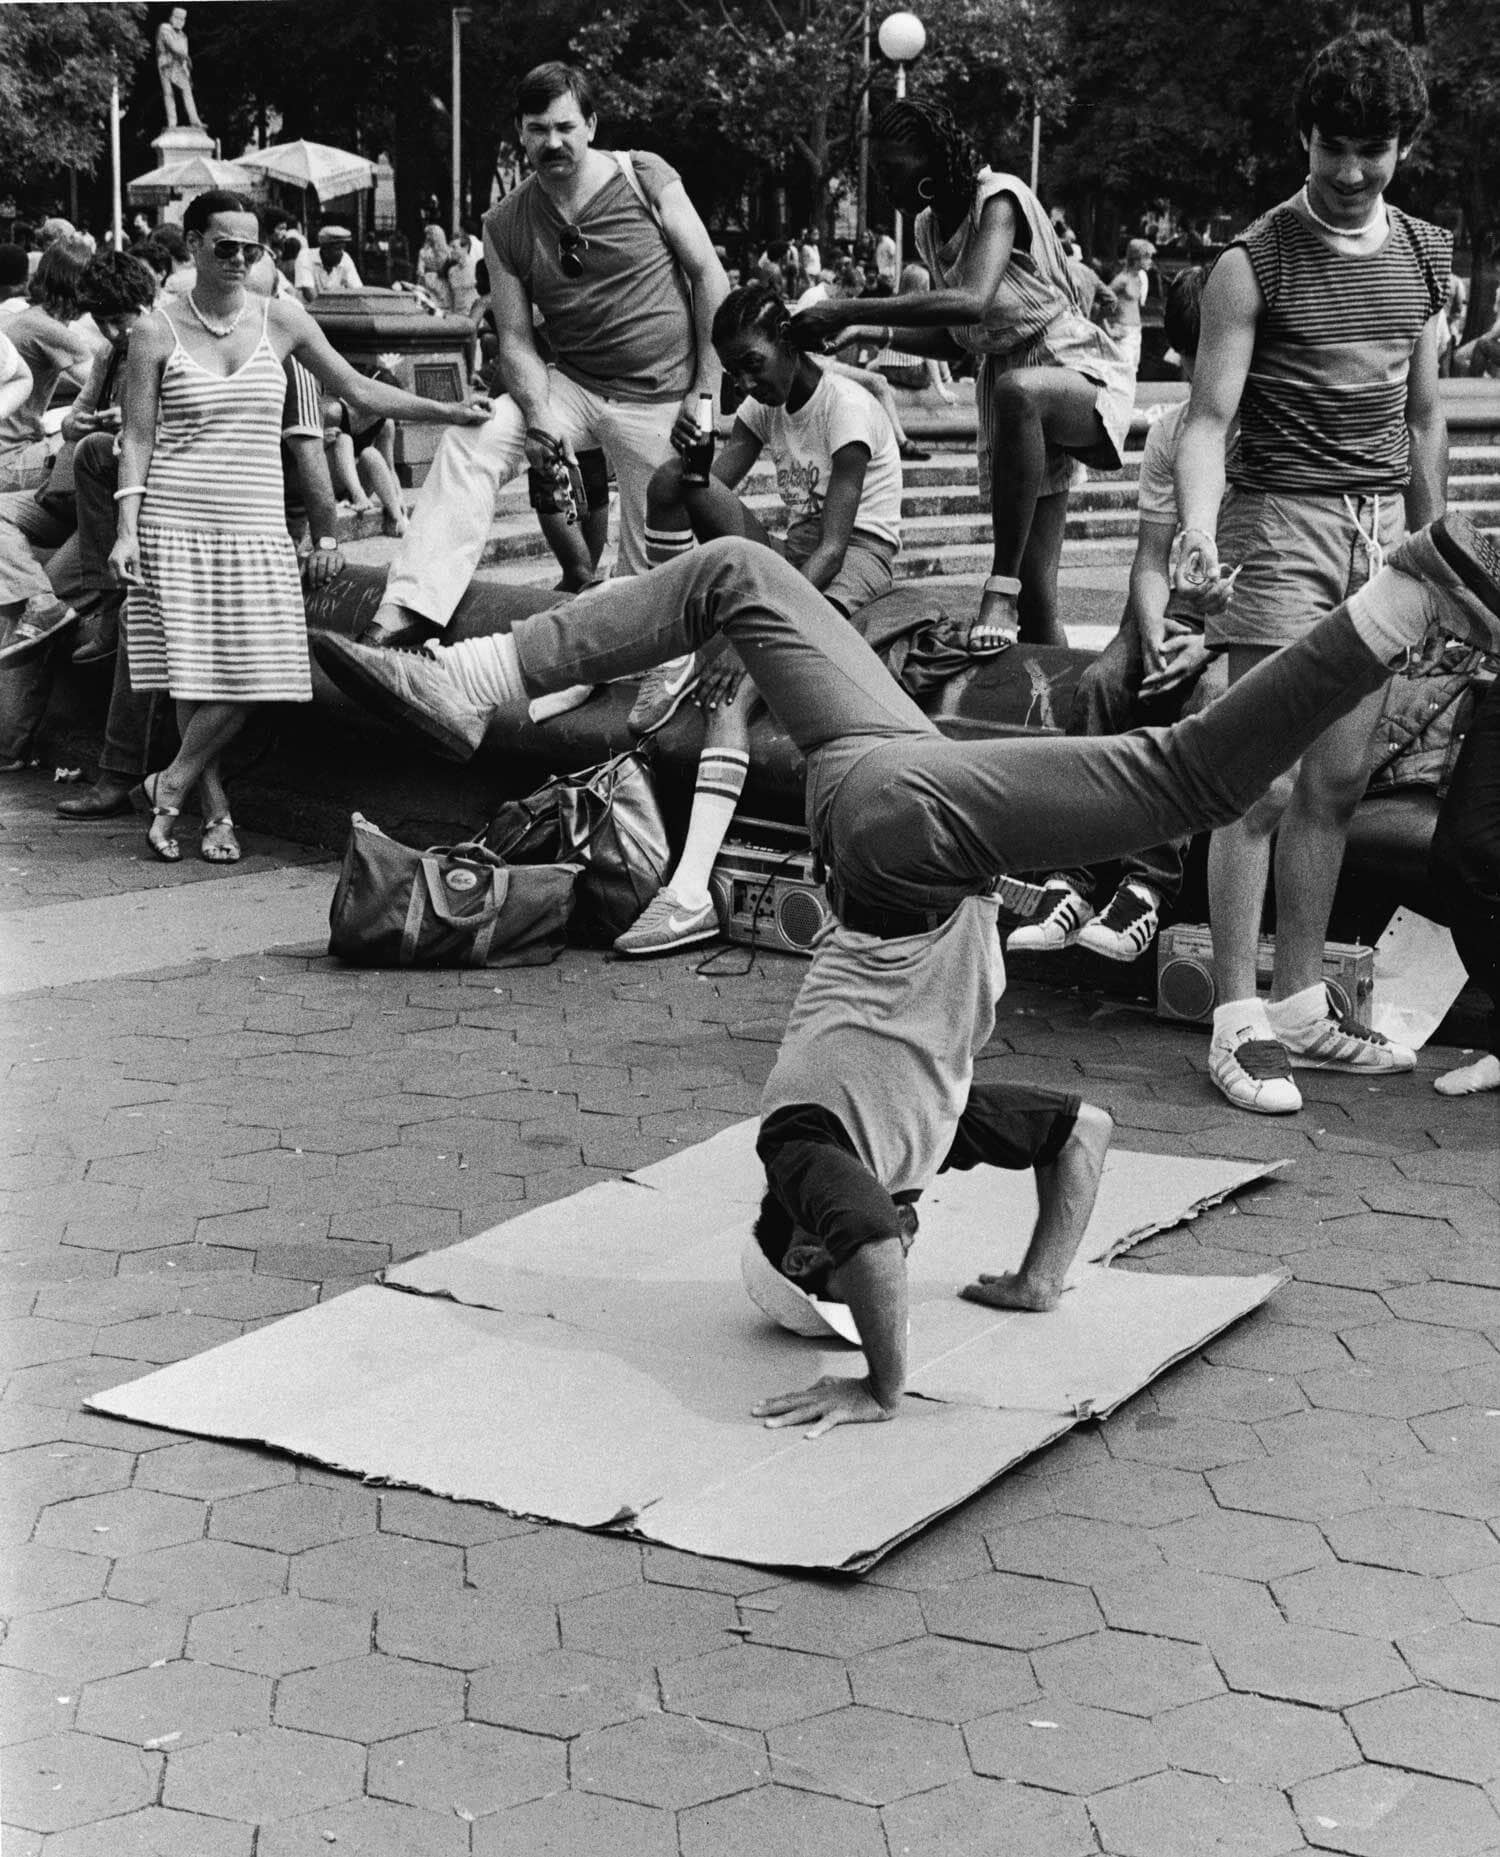 A break dancer in Washington Square Park